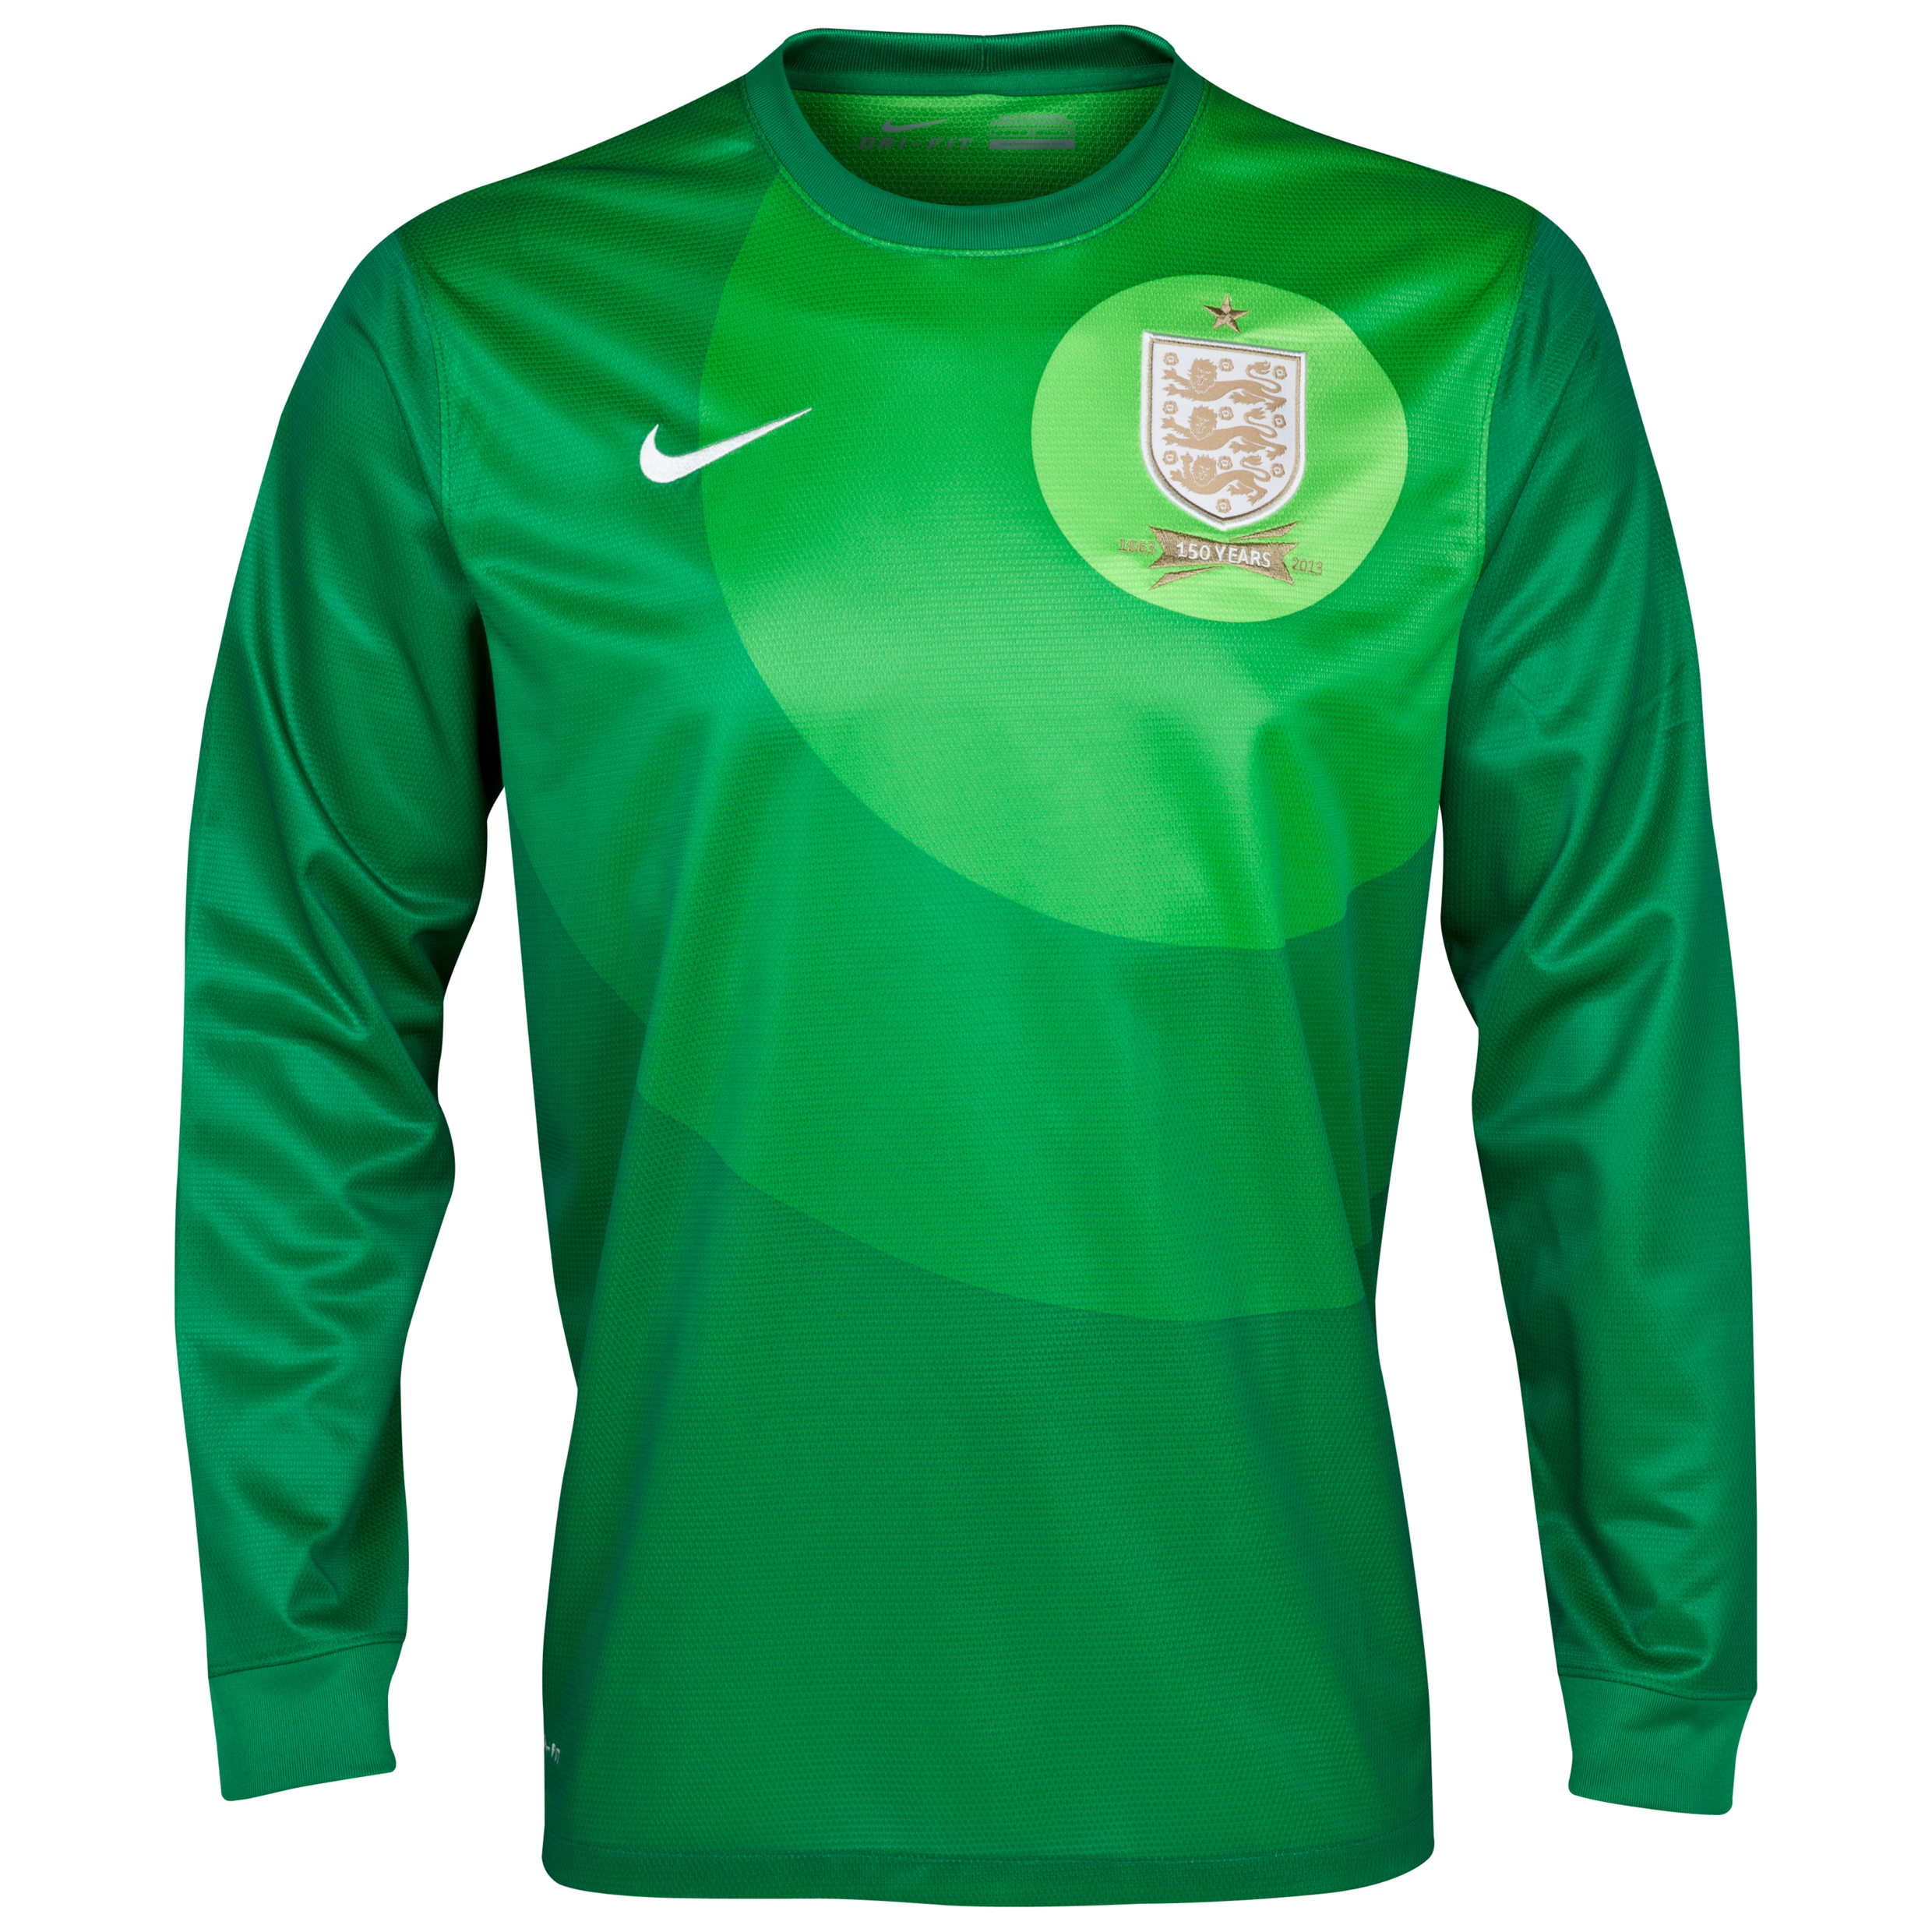 England Home Goalkeeper Shirt 2013/14 - Long Sleeve - Kids Green